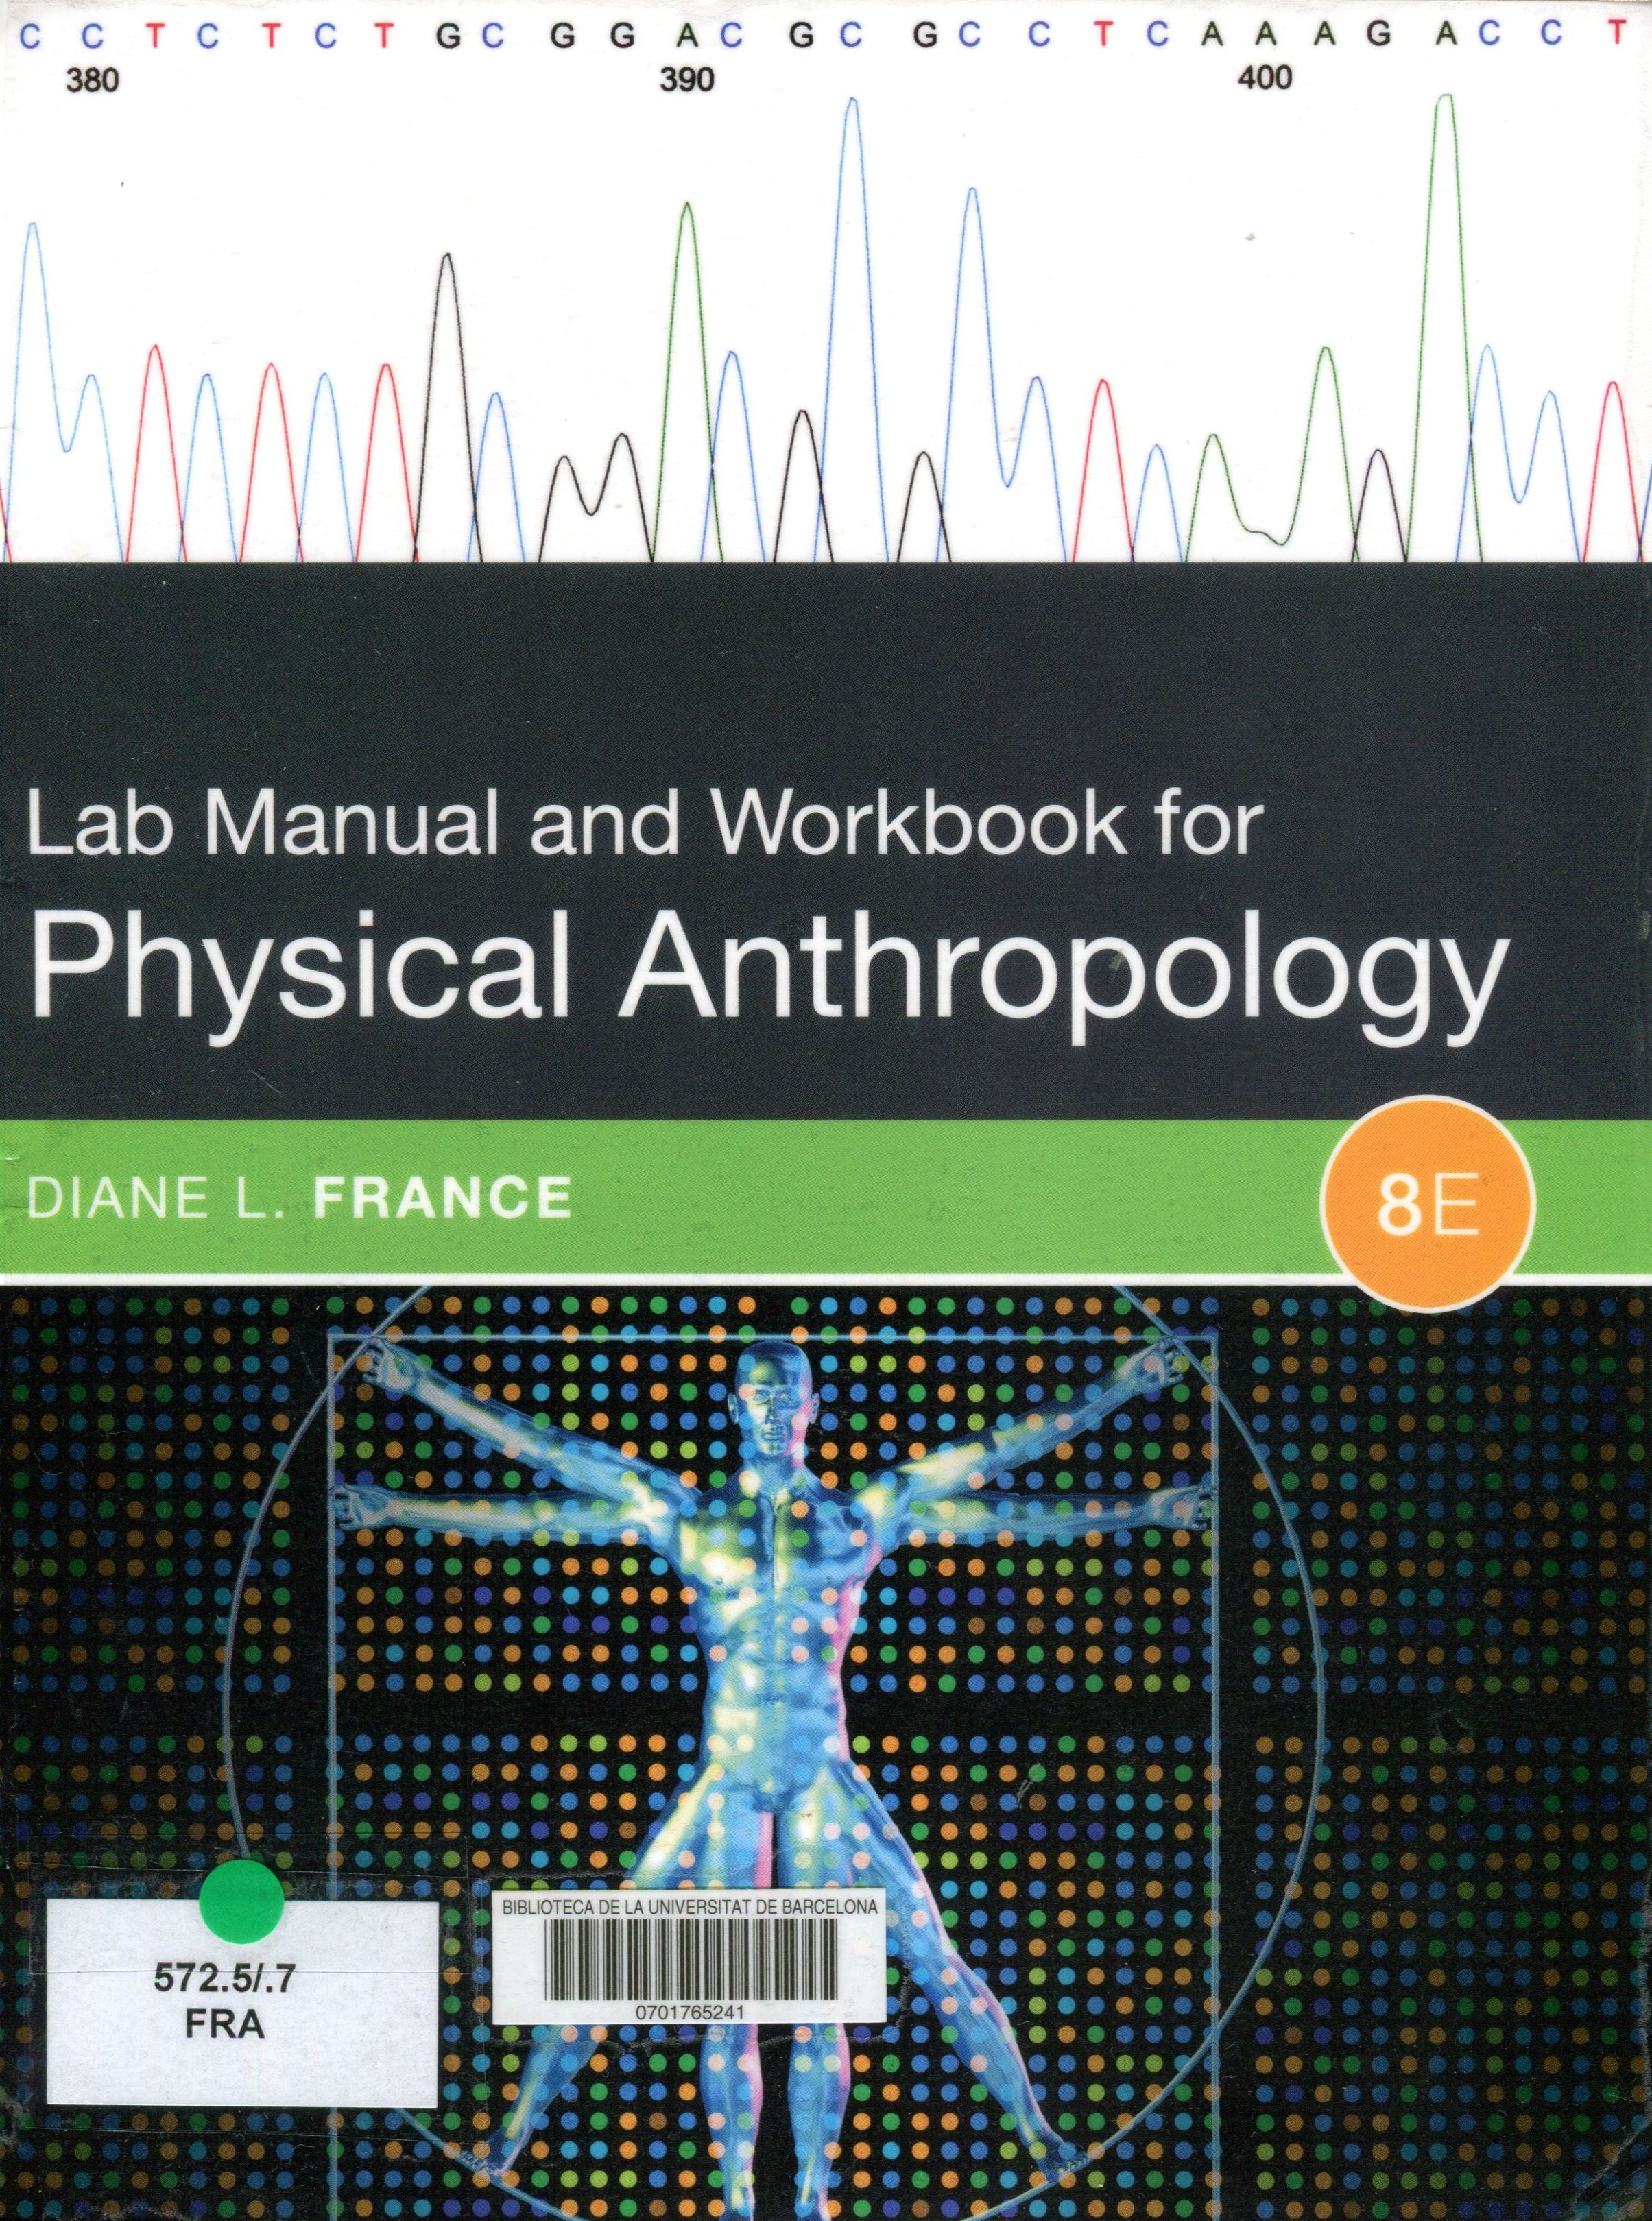 Lab manual and workbook for physical anthropology / Diane L. France.  Boston, MA